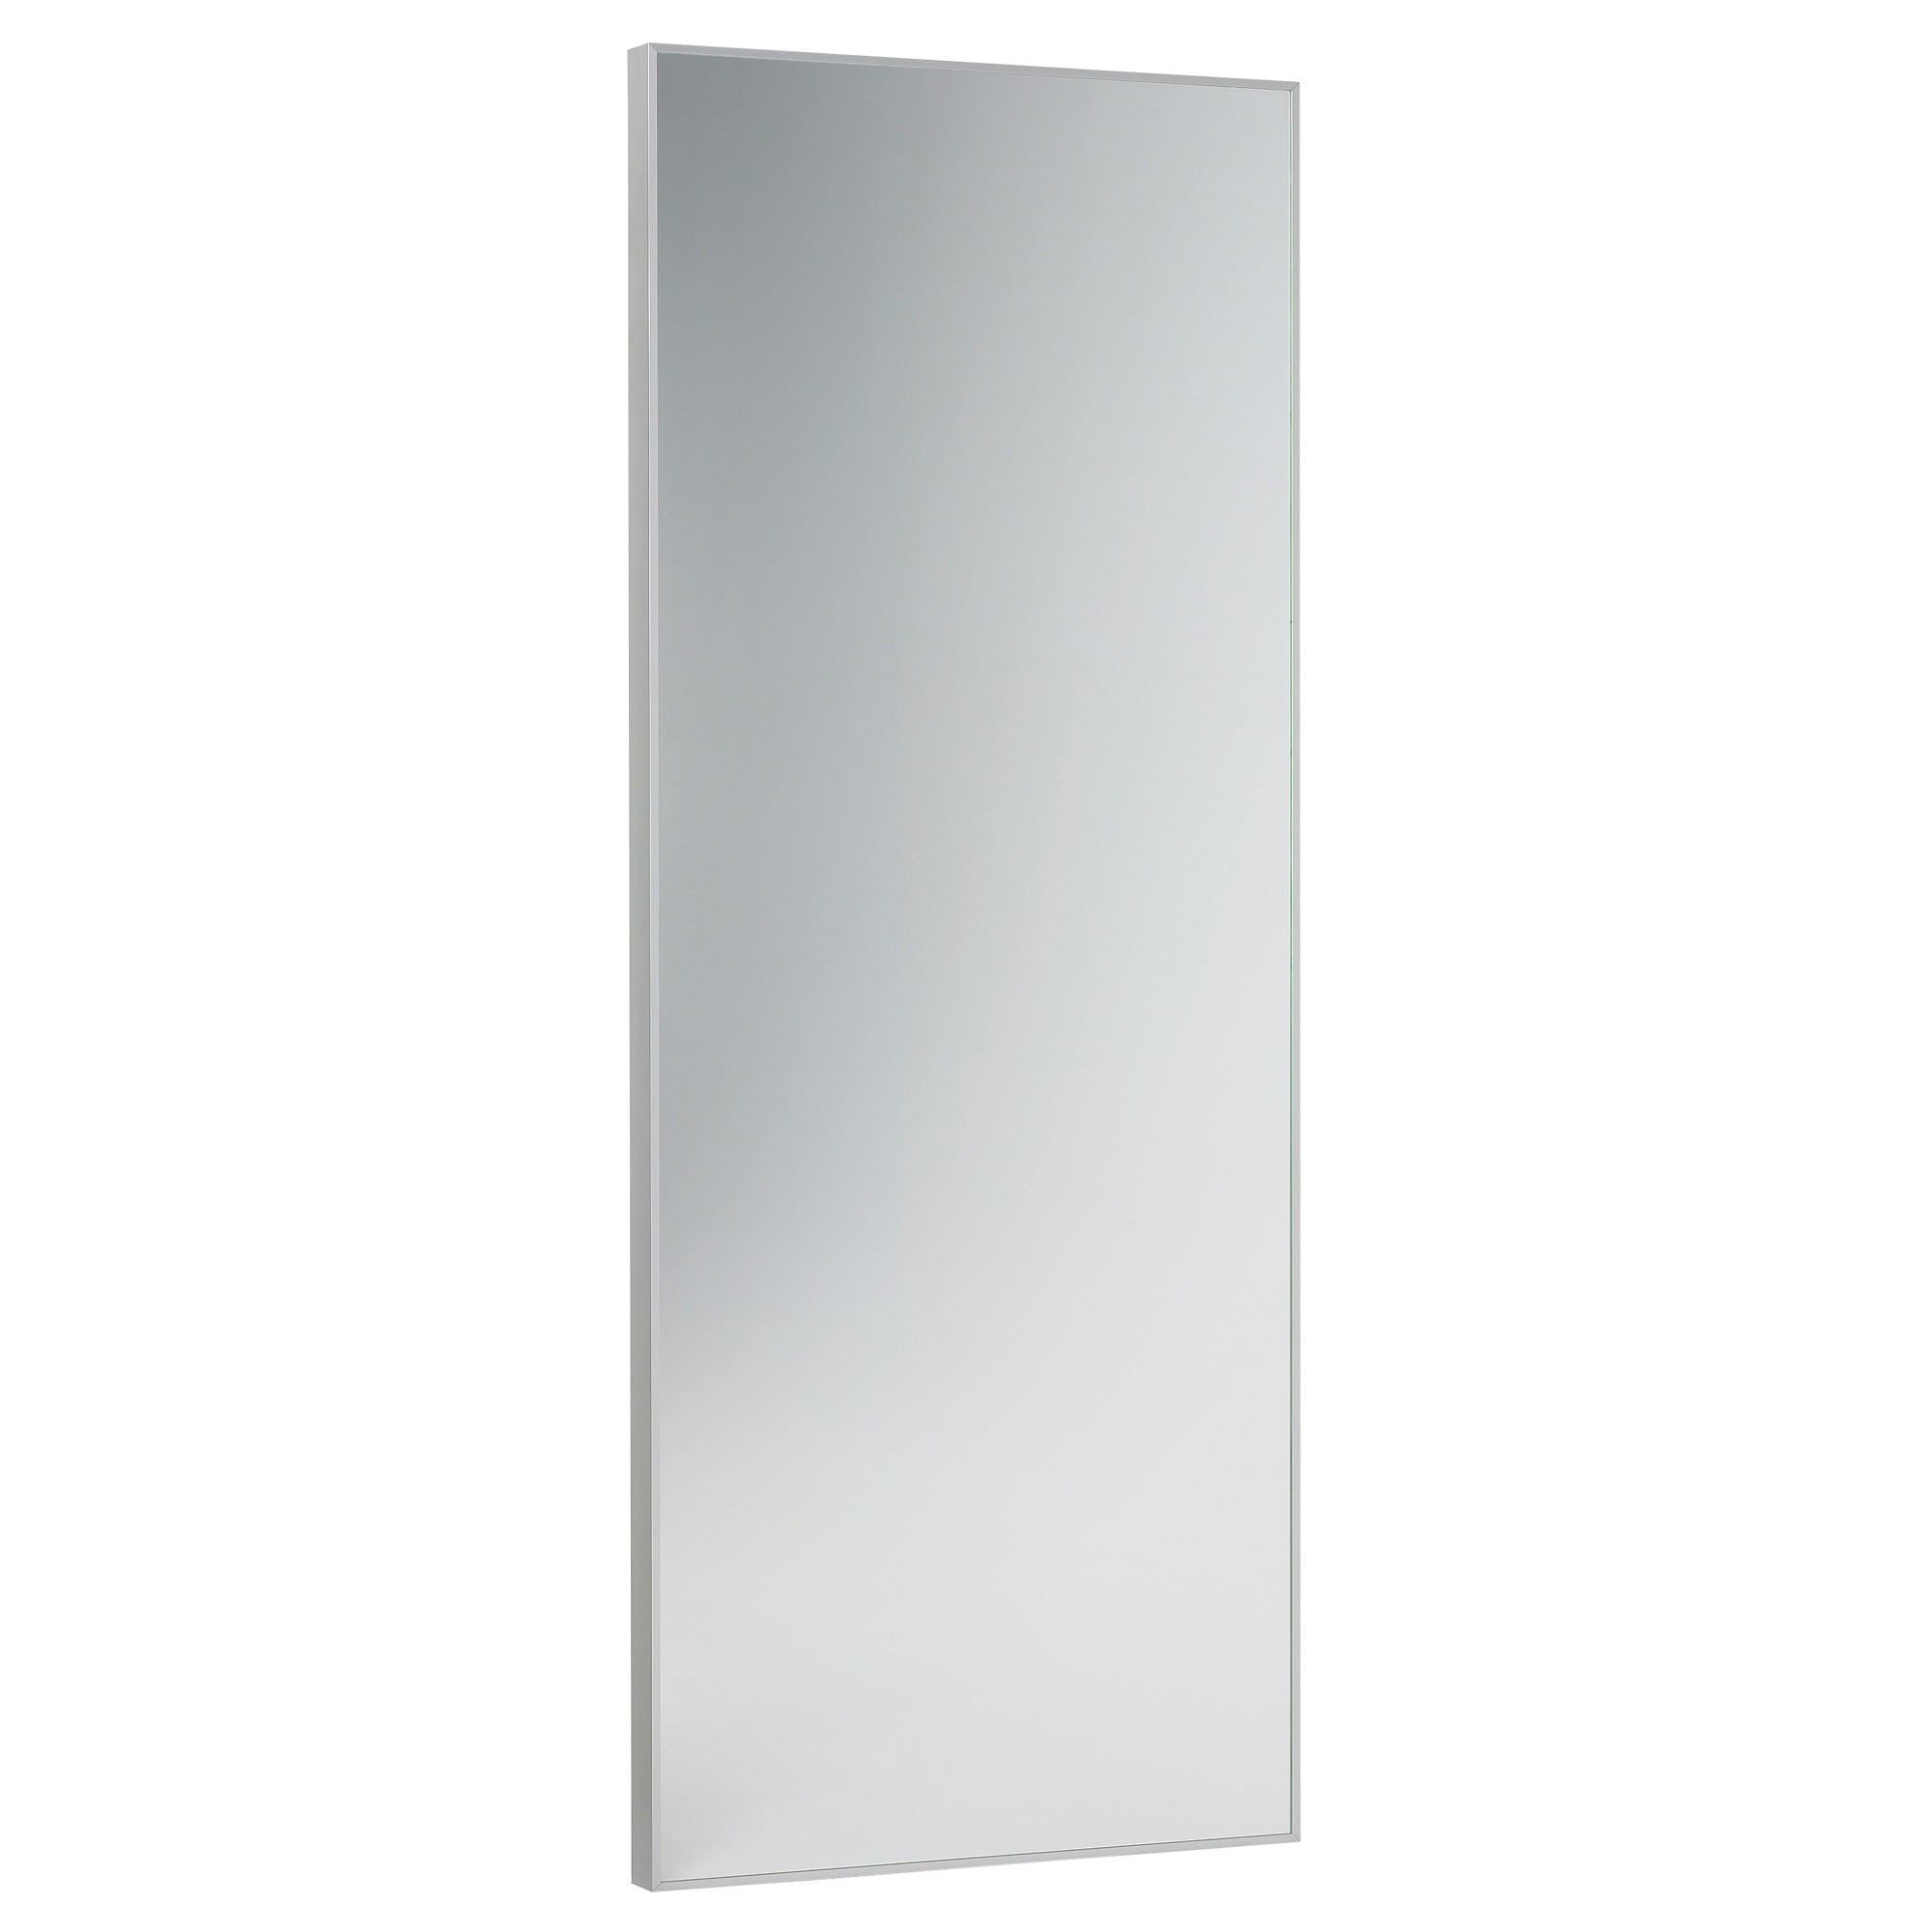 Latest Decor: Sophisticated Hovet Mirror For Home Design Ideas Pertaining To Ikea Full Length Wall Mirrors (View 11 of 20)